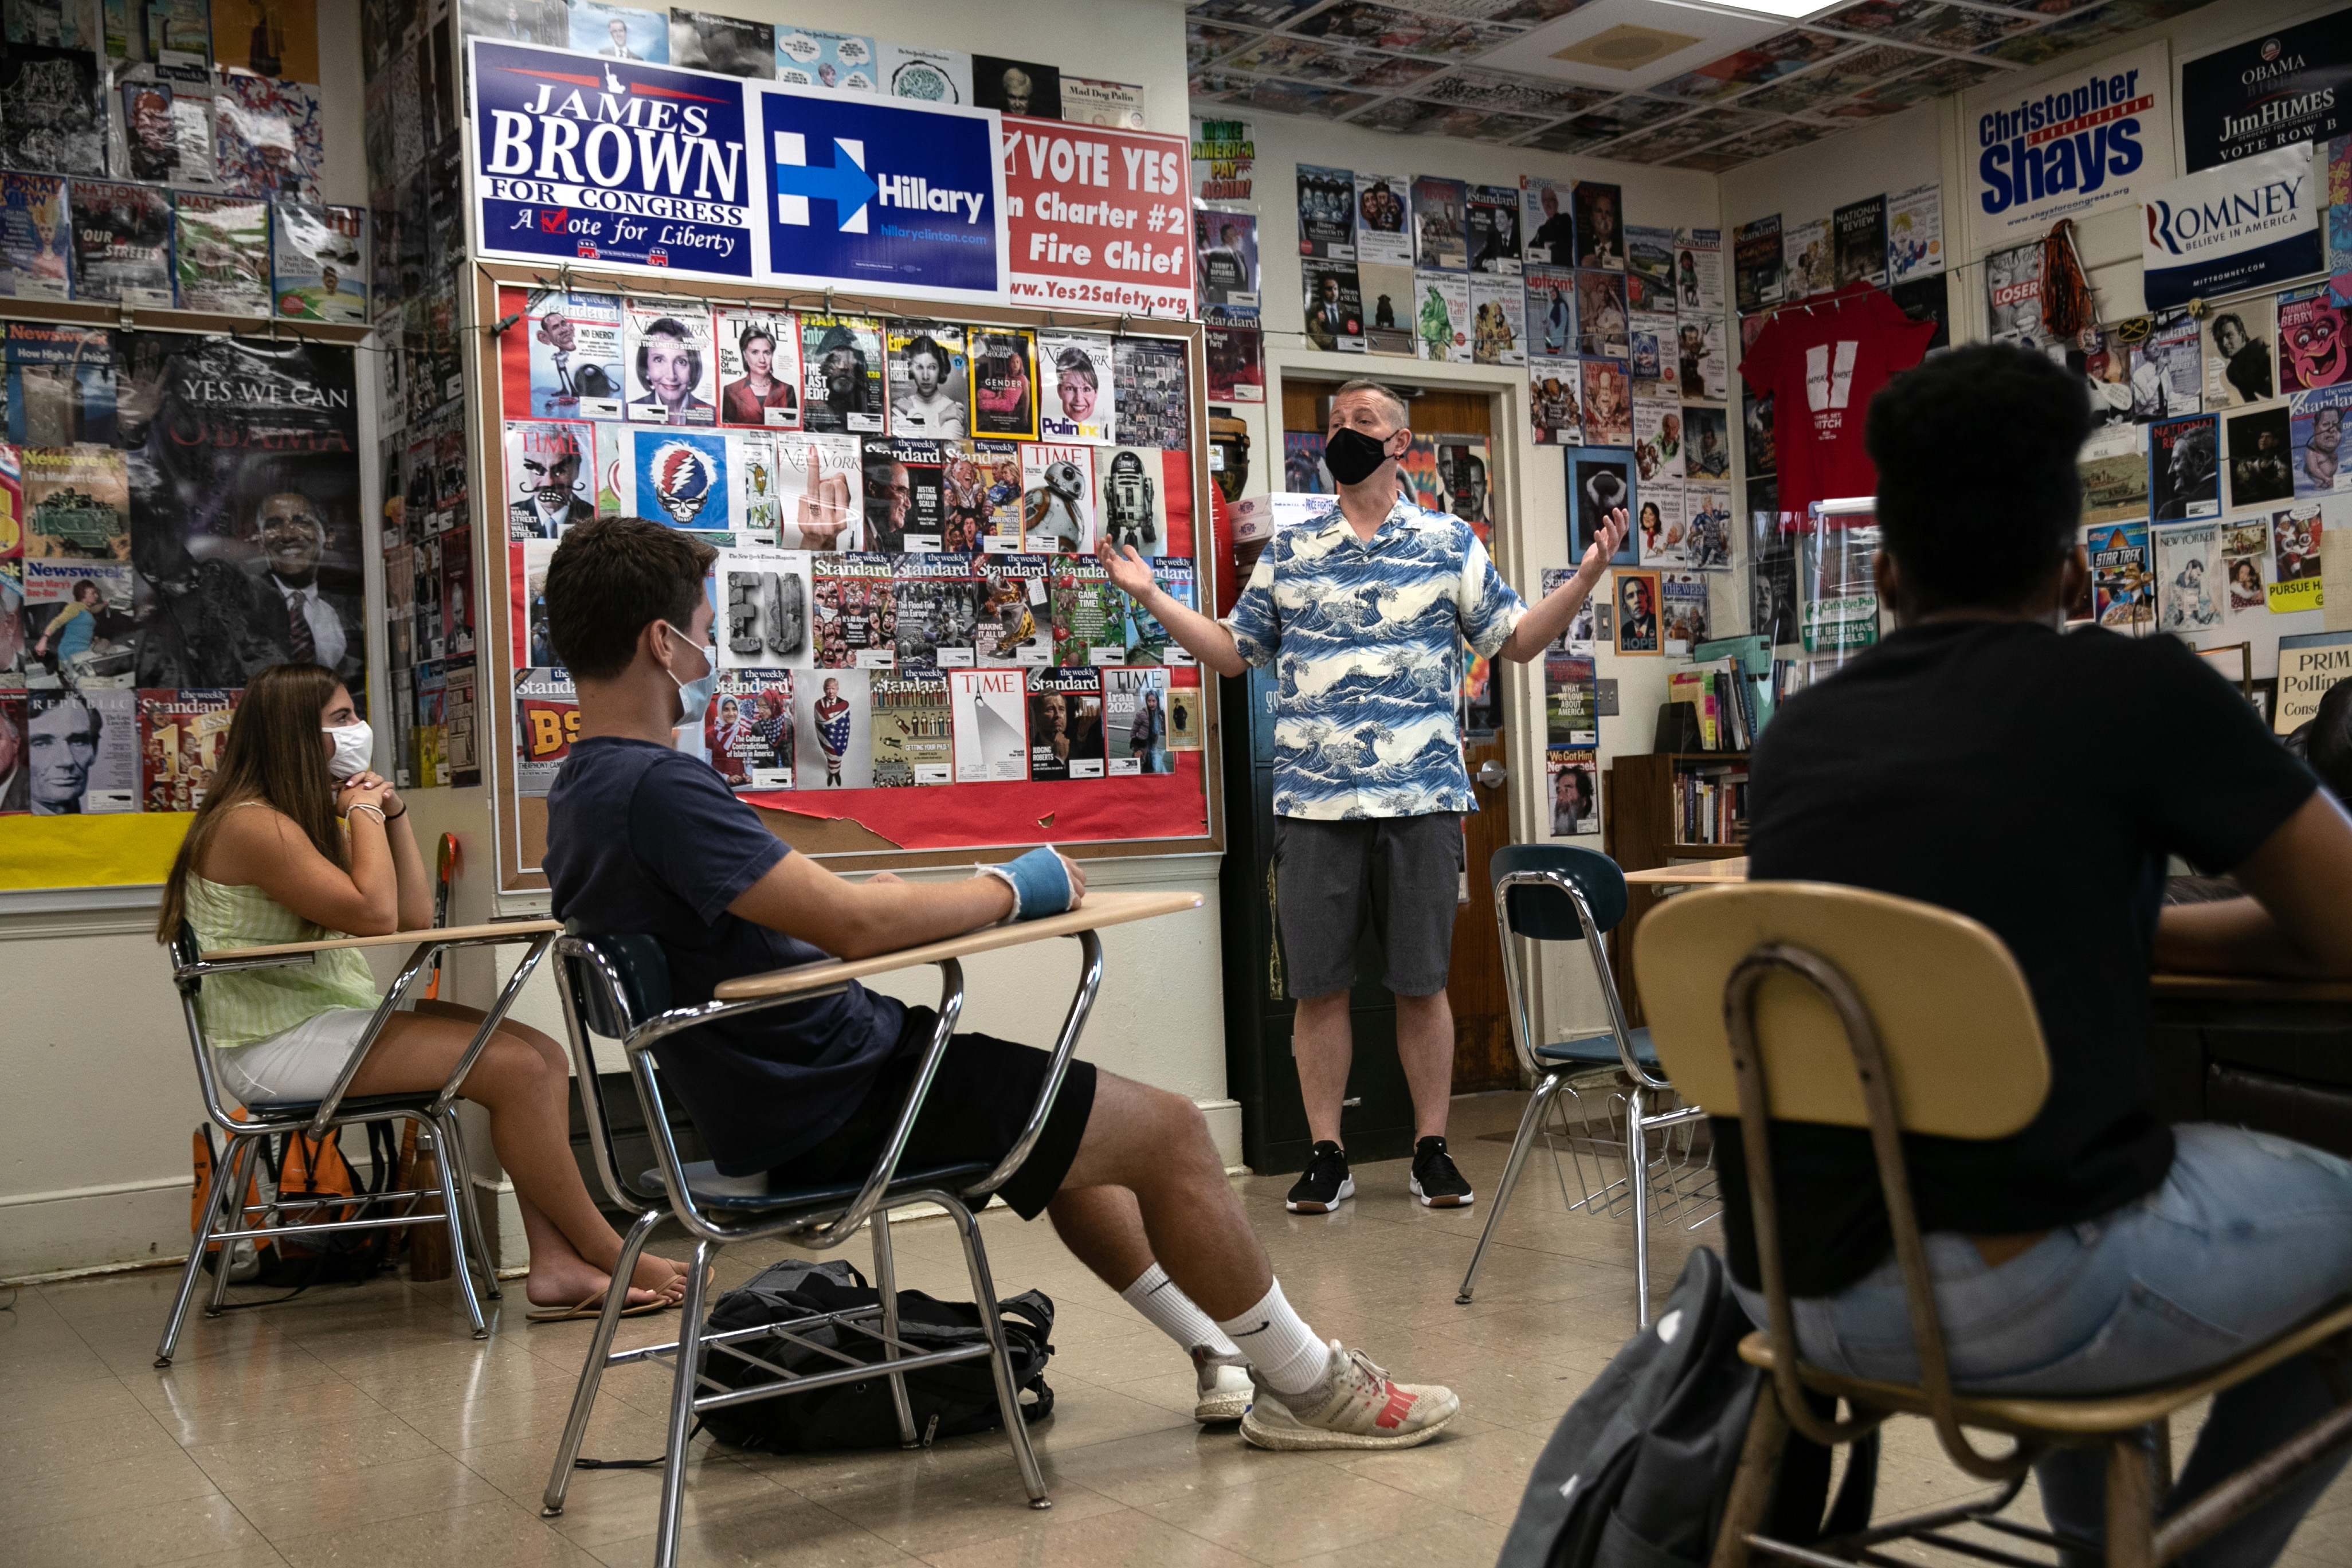 Honors civics teacher Mike Brown discusses the U.S. presidential election with masked students on the first day of school at Stamford High School on Sept. 8, 2020 in Stamford, Connecticut.